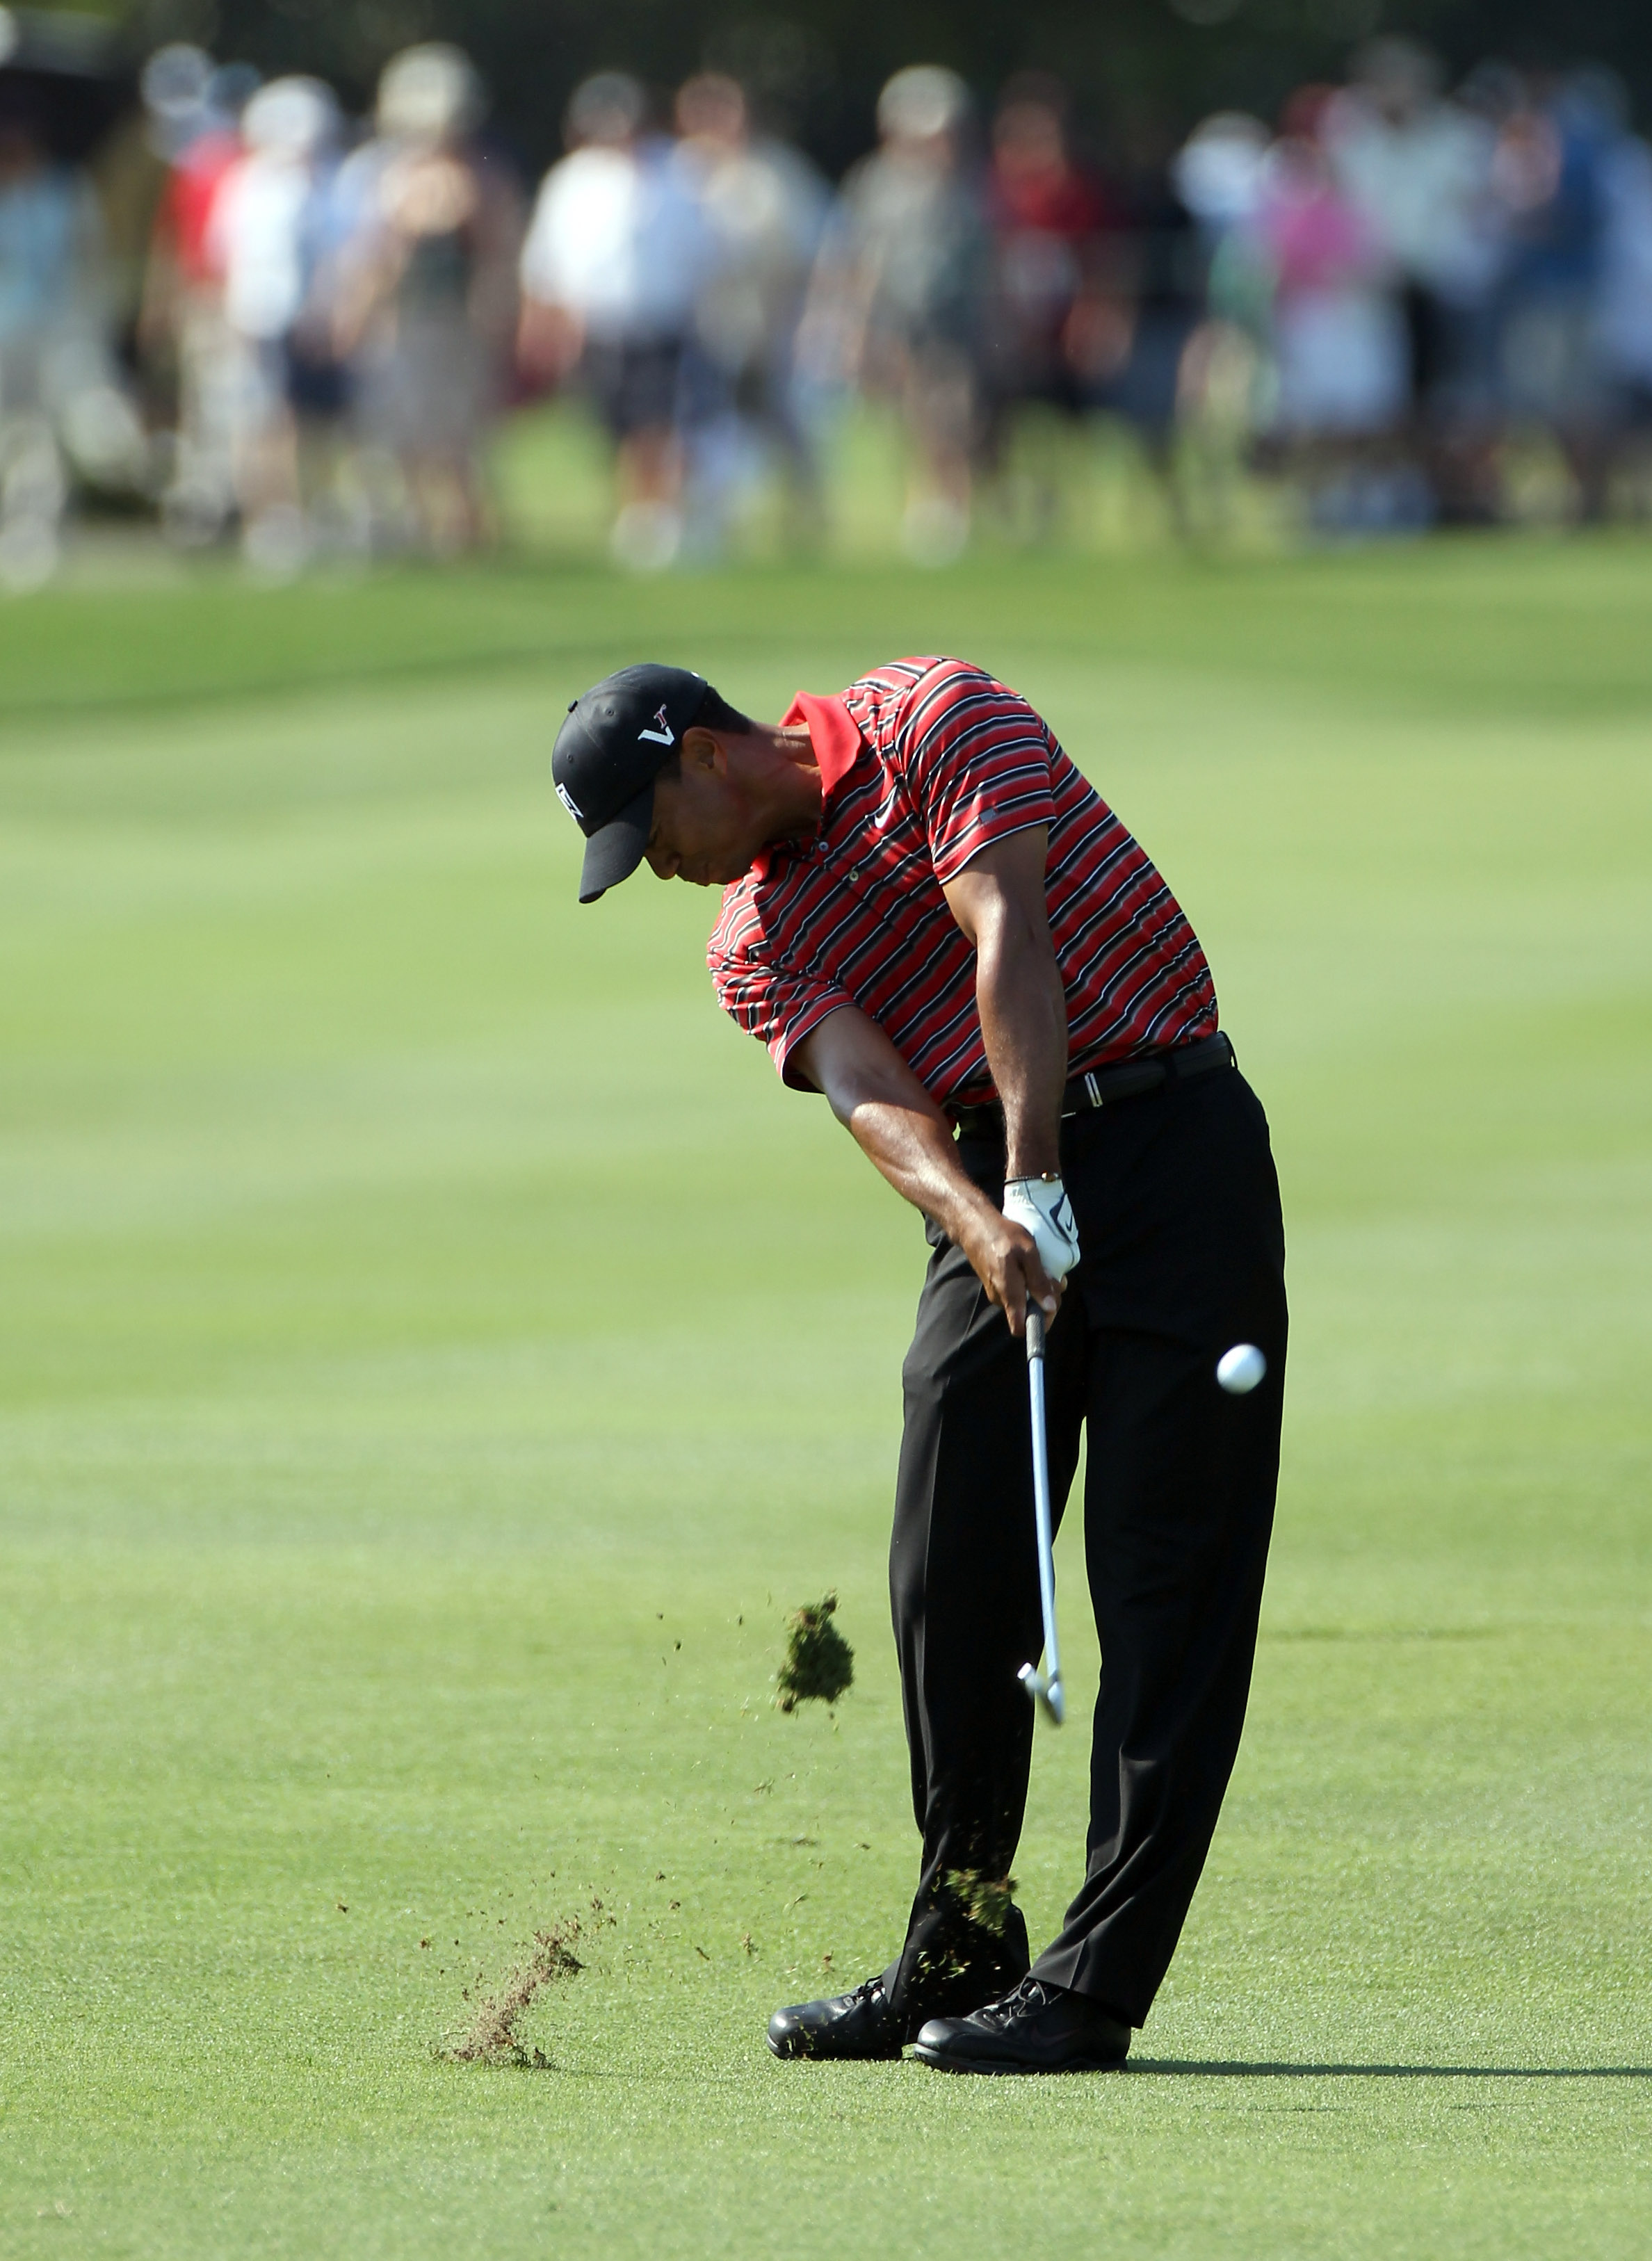 ORLANDO, FL - MARCH 27:  Tiger Woods plays a shot on the 1st hole during the final round of the Arnold Palmer Invitational presented by MasterCard at the Bay Hill Club and Lodge on March 27, 2011 in Orlando, Florida.  (Photo by Sam Greenwood/Getty Images)